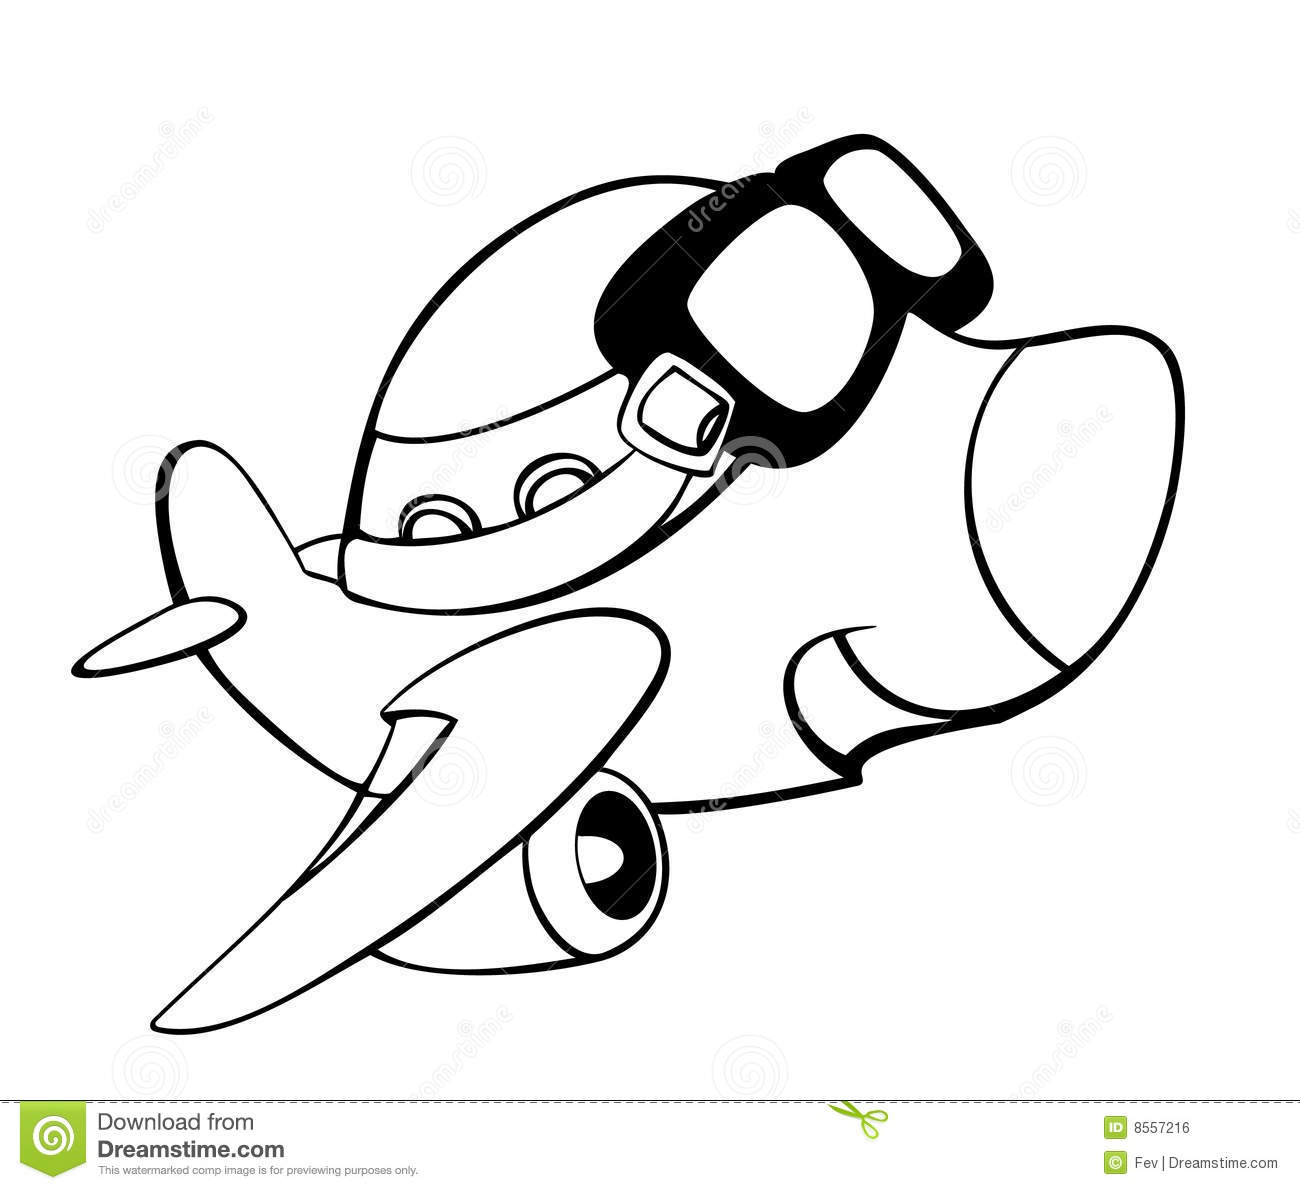 Dessin anim d 39 avion illustration de vecteur illustration du avion 8557216 - Dessin d avion facile ...